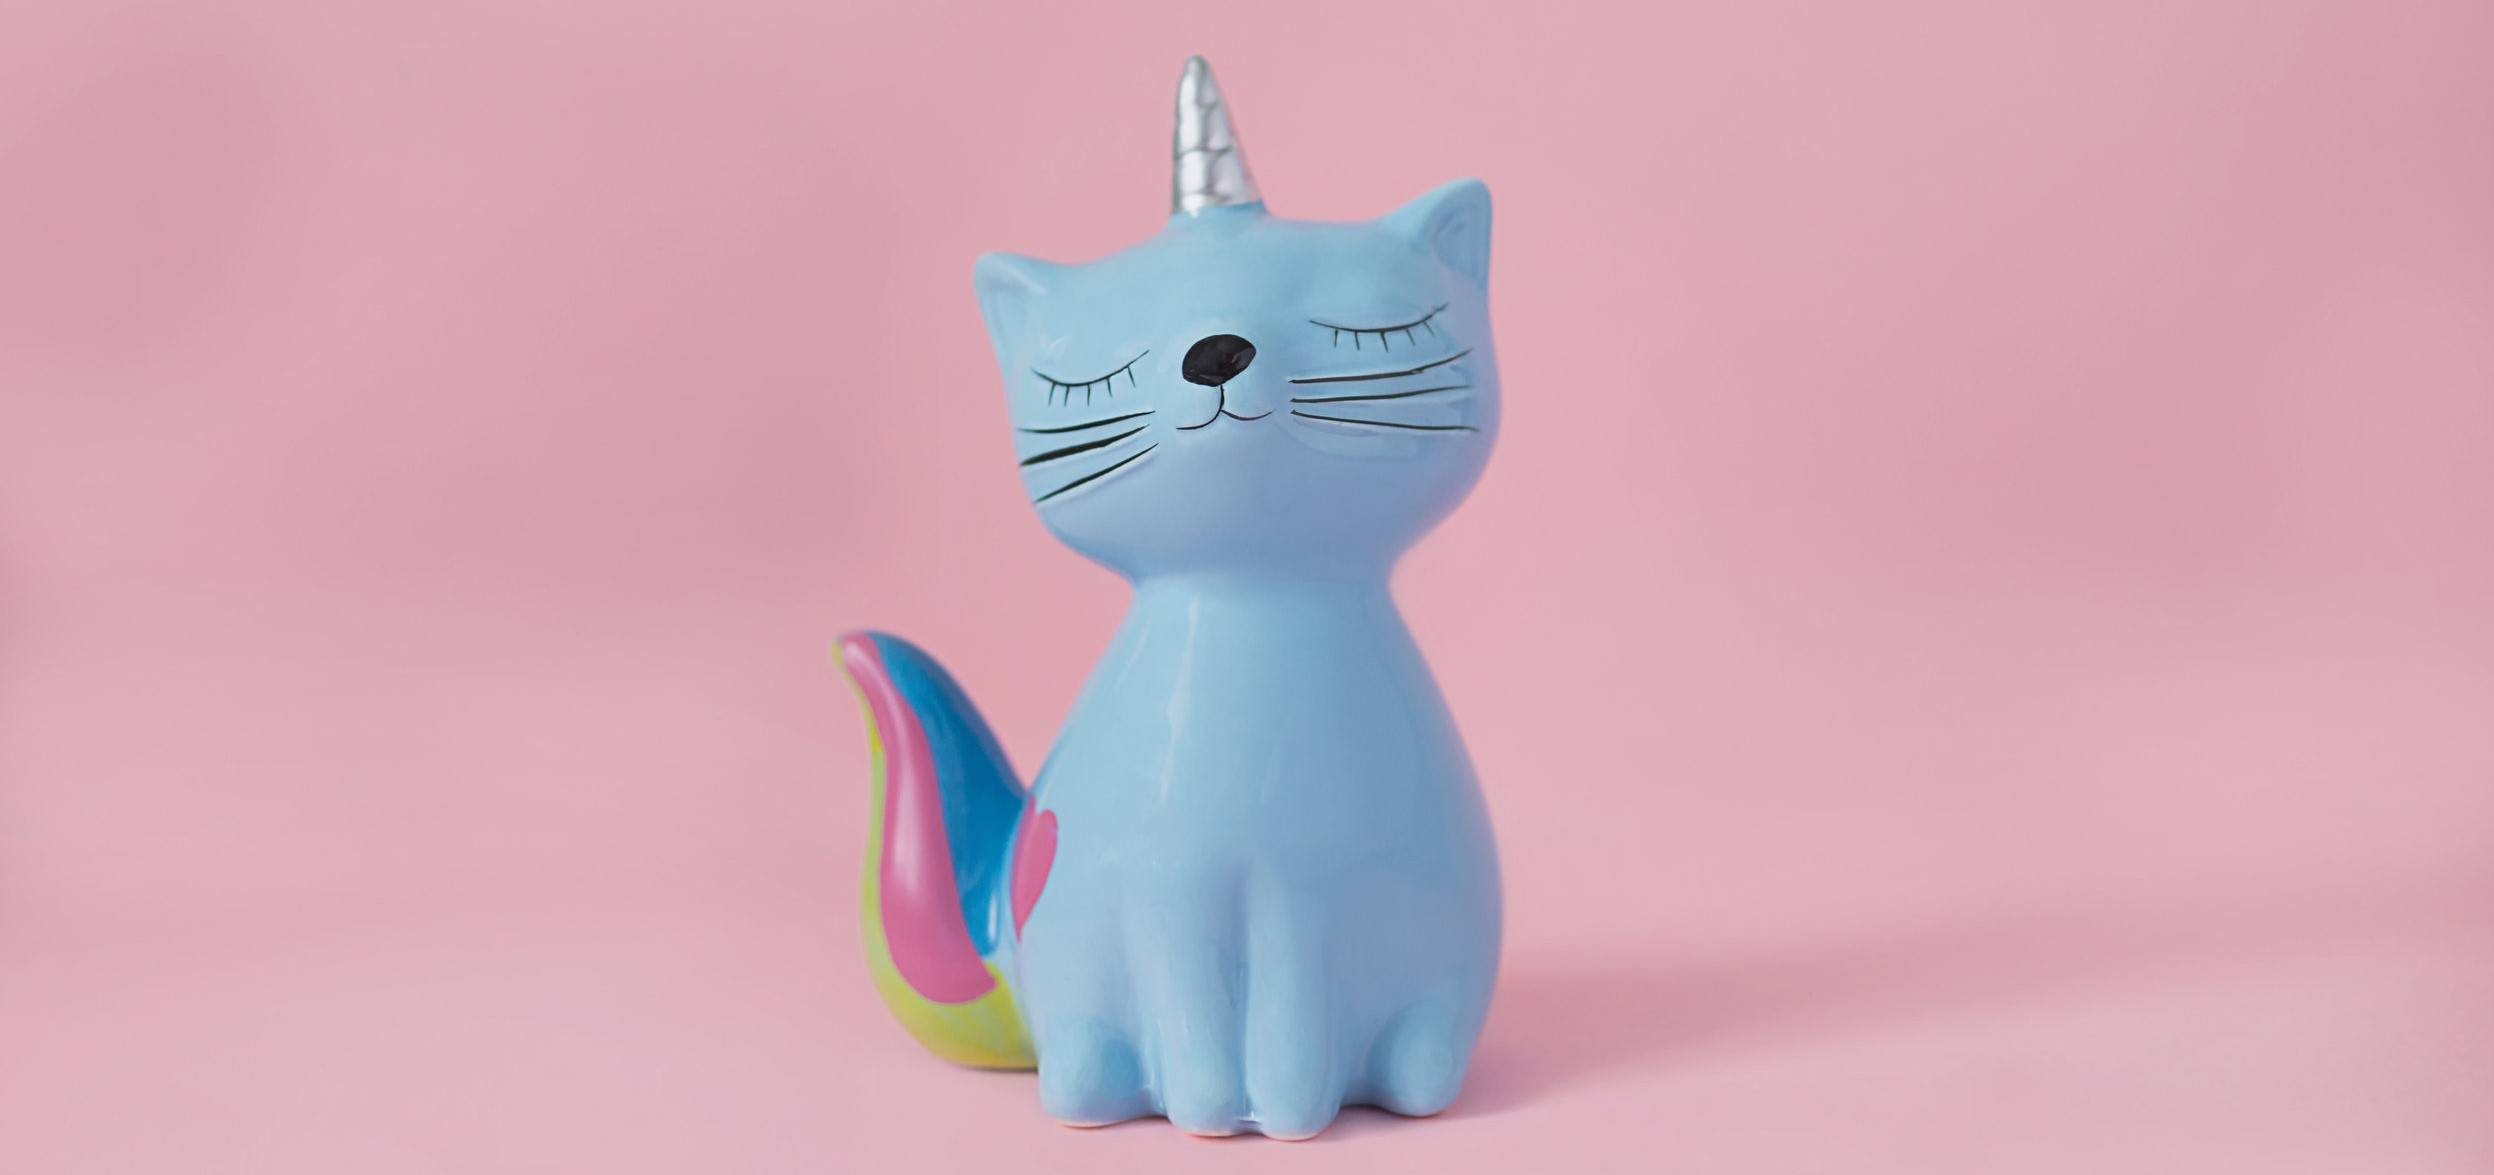 Picture of a ceramic souvenir toy moneybox kitten Korn blue with colorful rainbow tail with closed eyes and unicorn horn on pink background in natural light